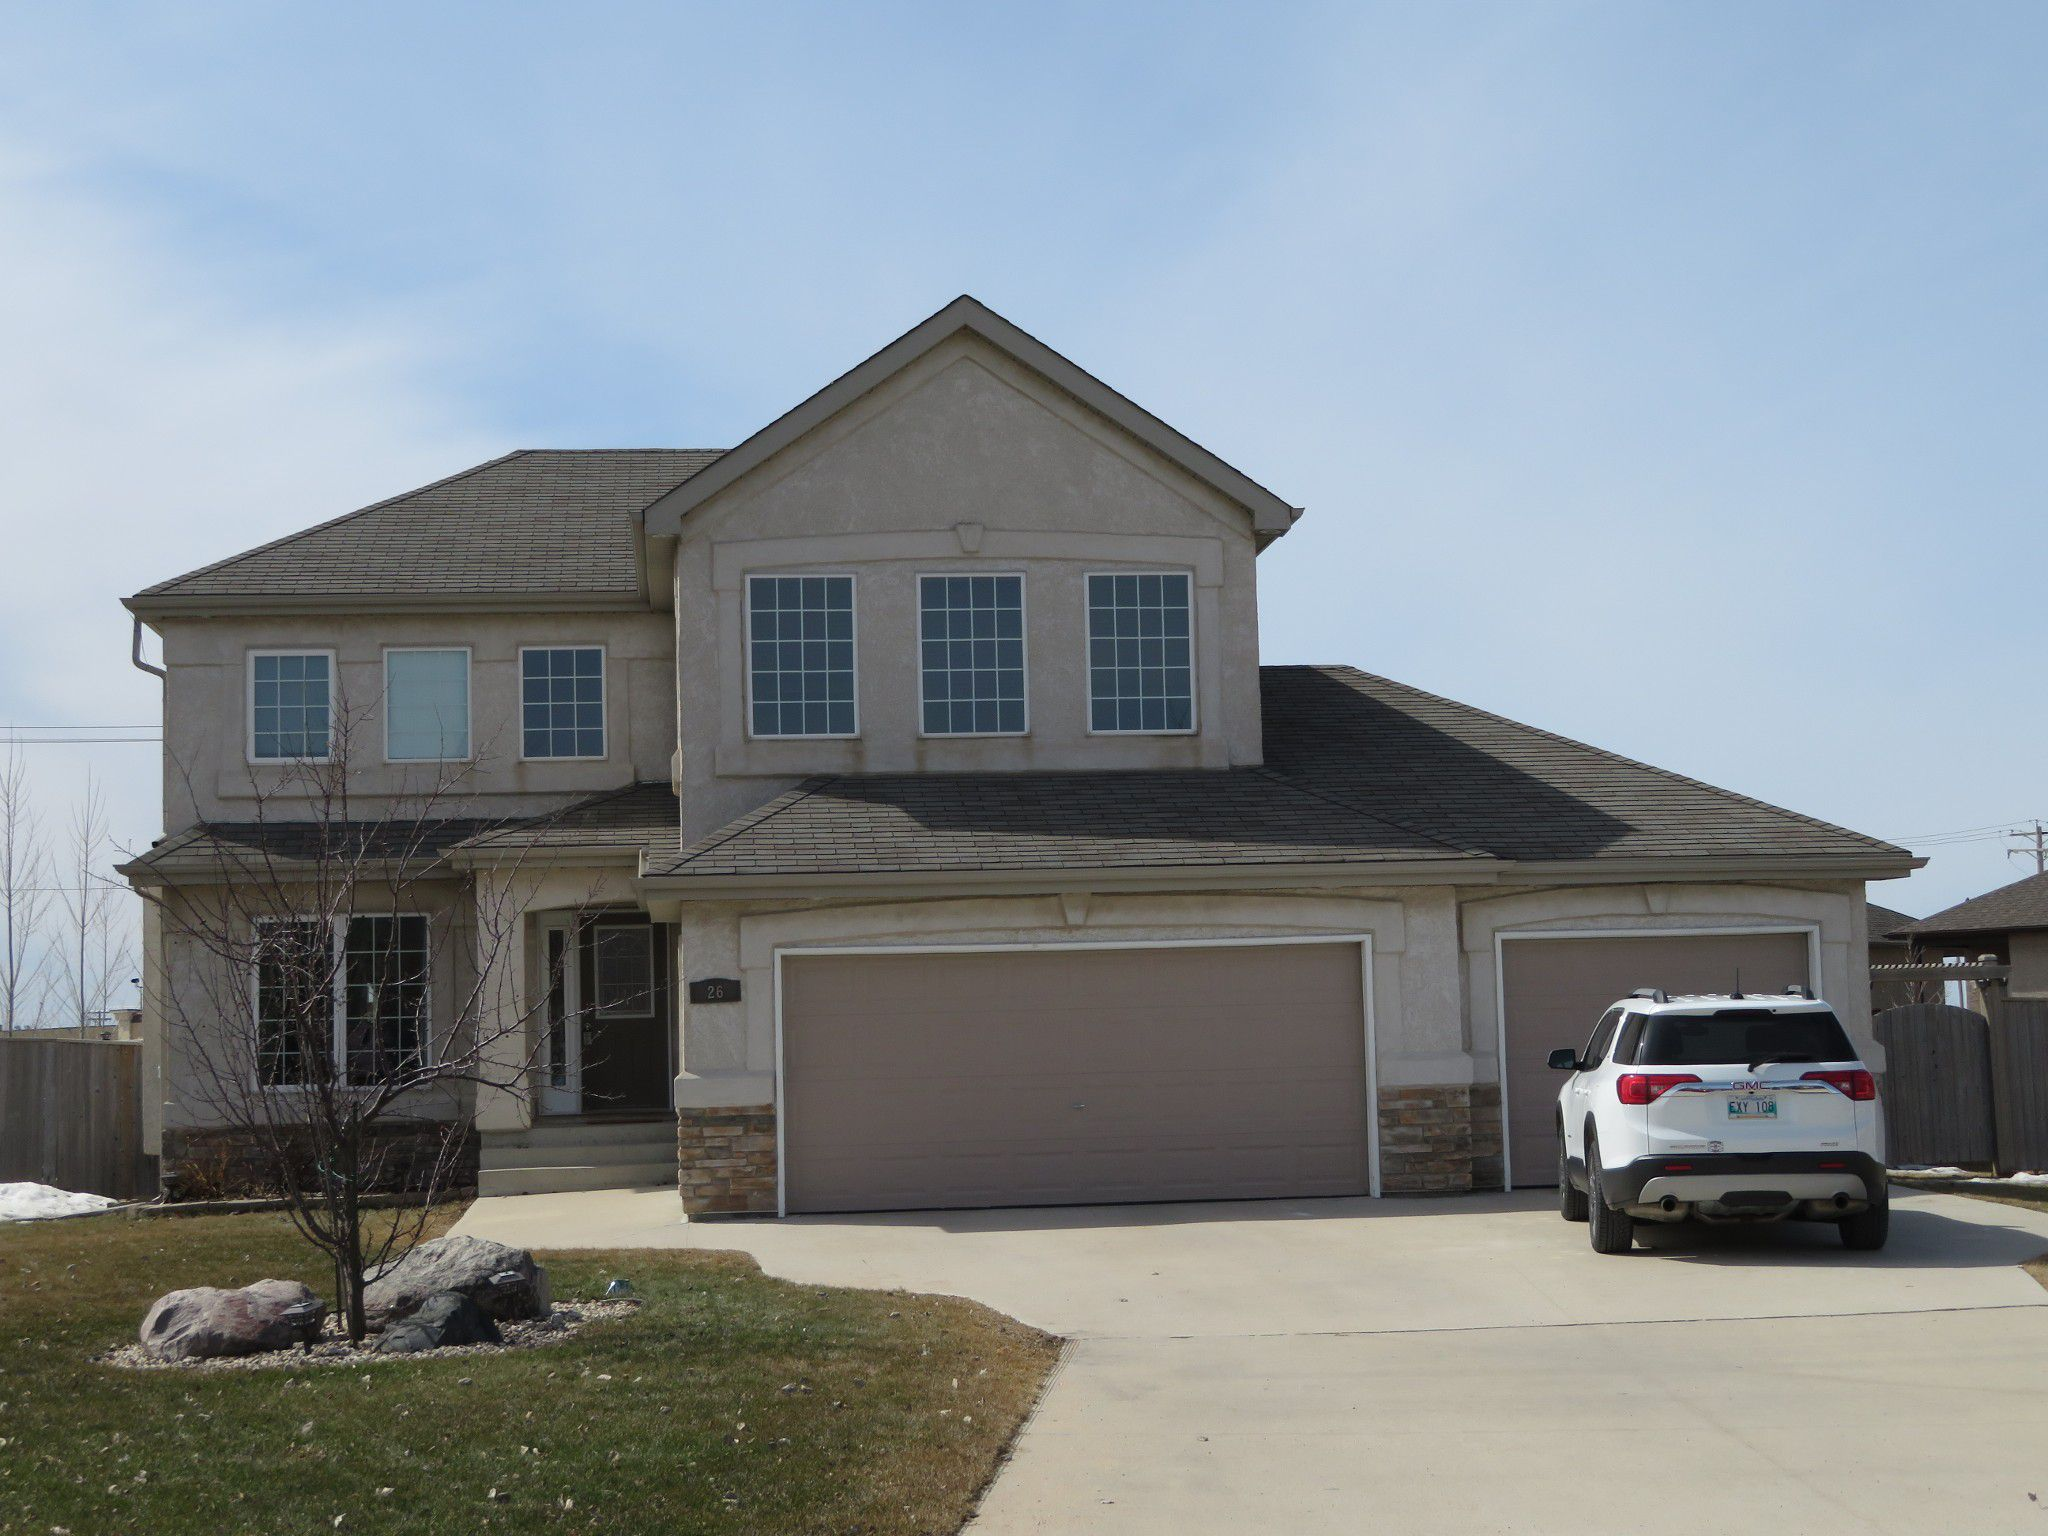 EXCEPTIONAL 2198 sf 3+ bedroom Two Storey Executive style home, fully finished basement with 4th bedroom, 34x22 AT3, located on massive fenced landscaped lot in desirable Aspen Lakes Development in the Town of Oakbank.